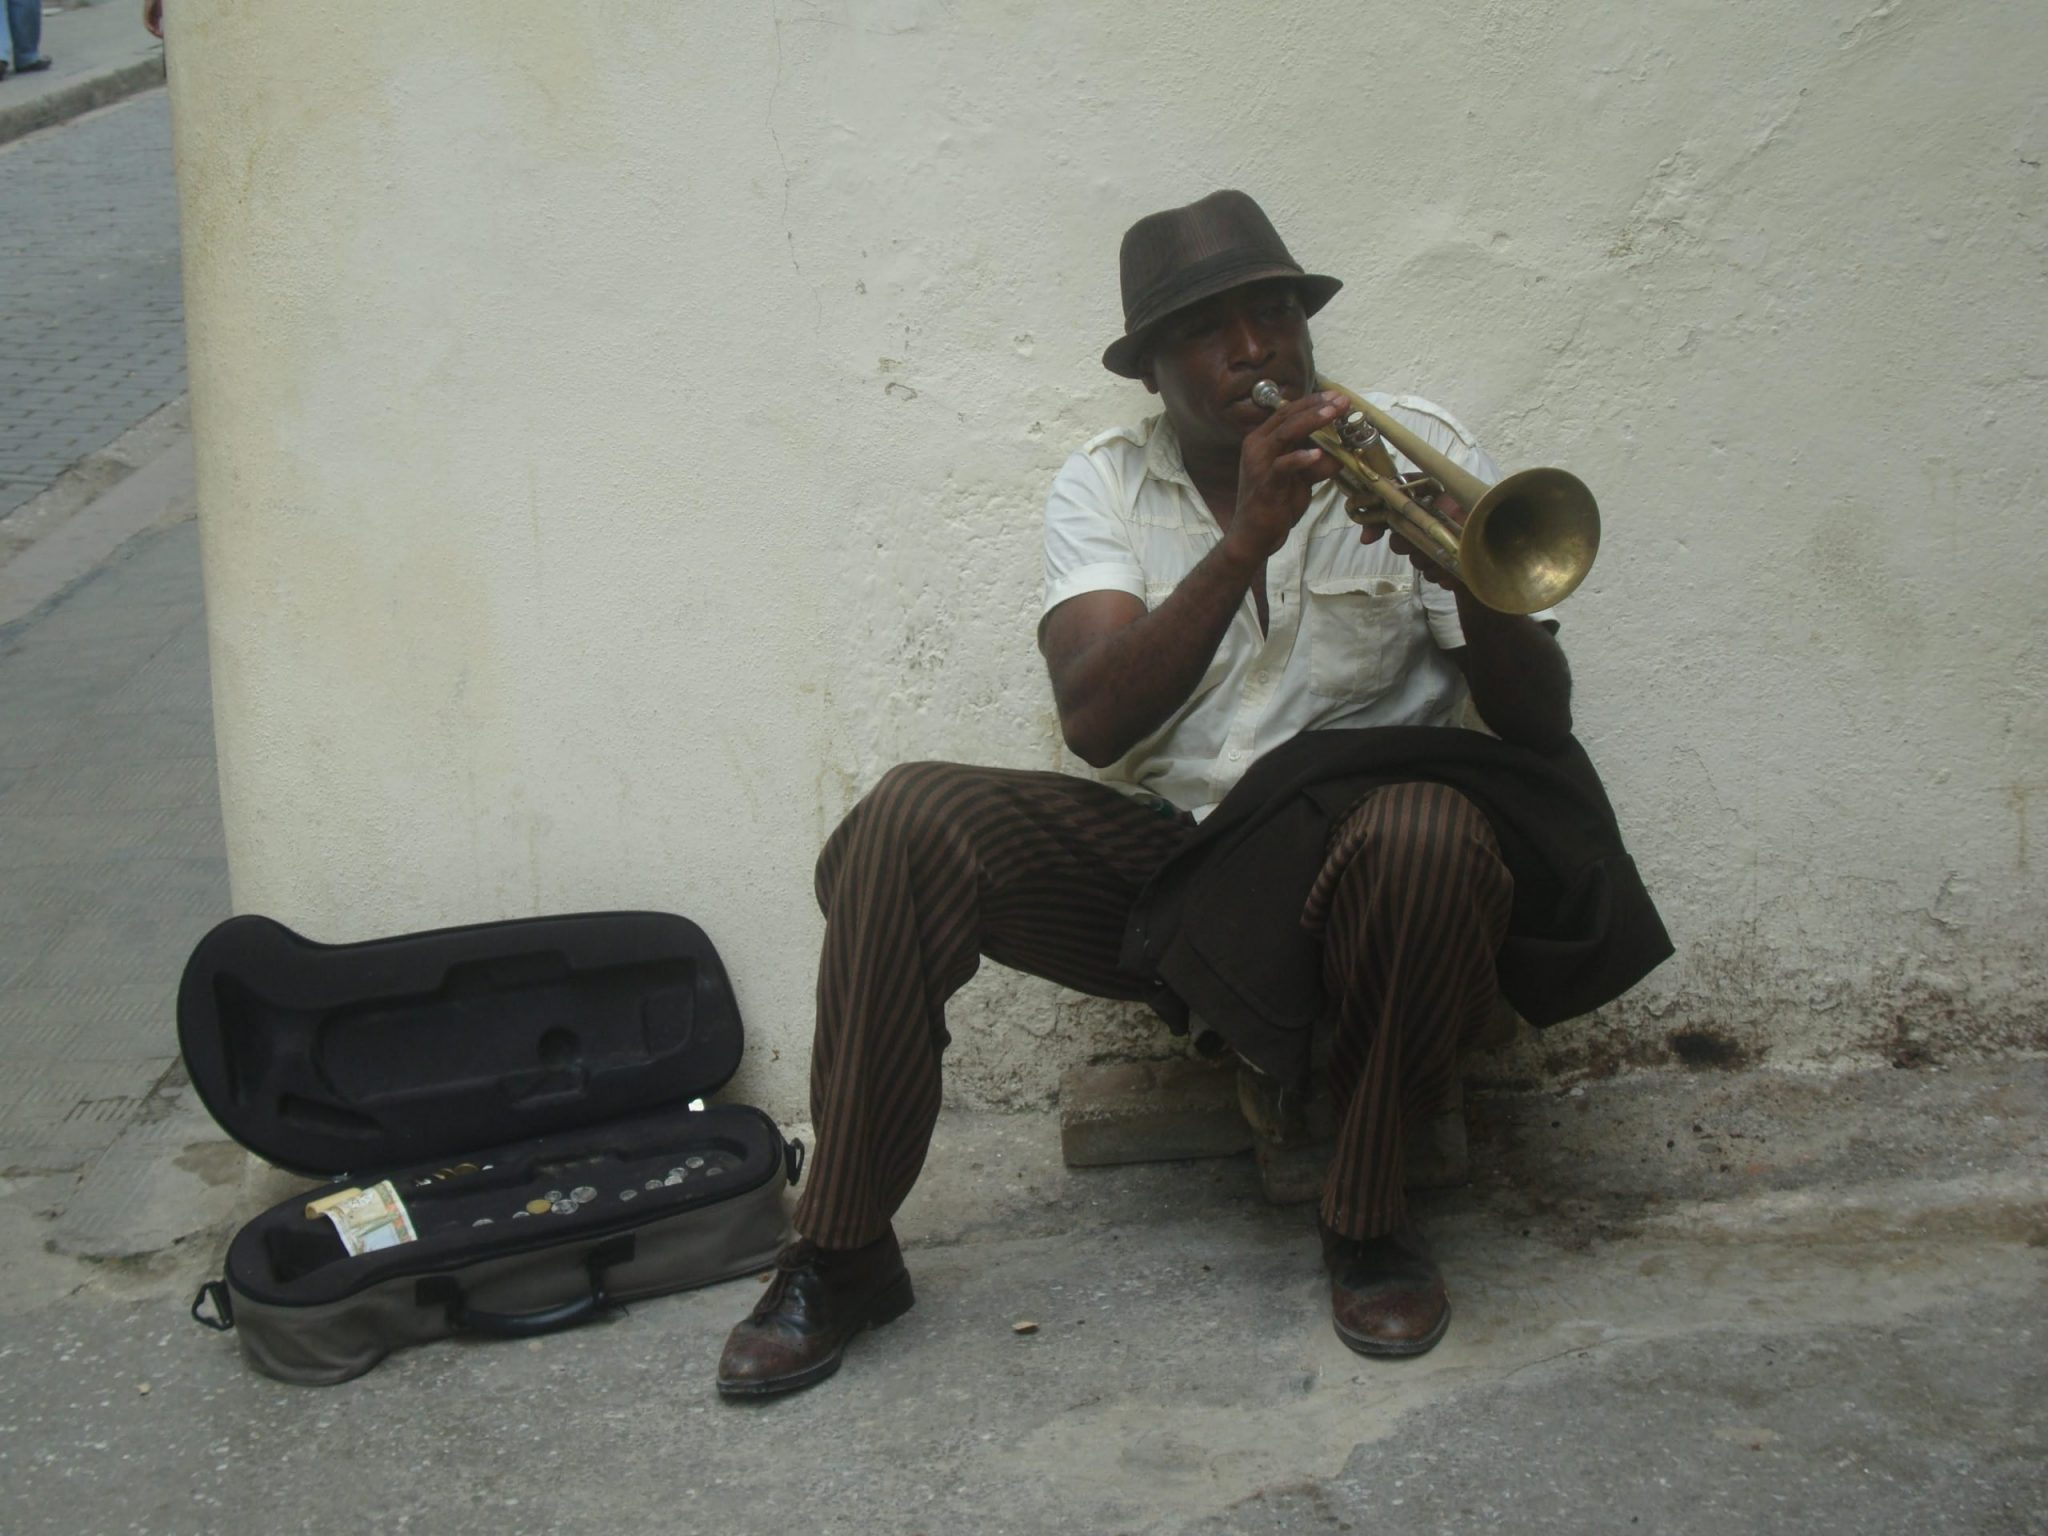 A photo of a street musician